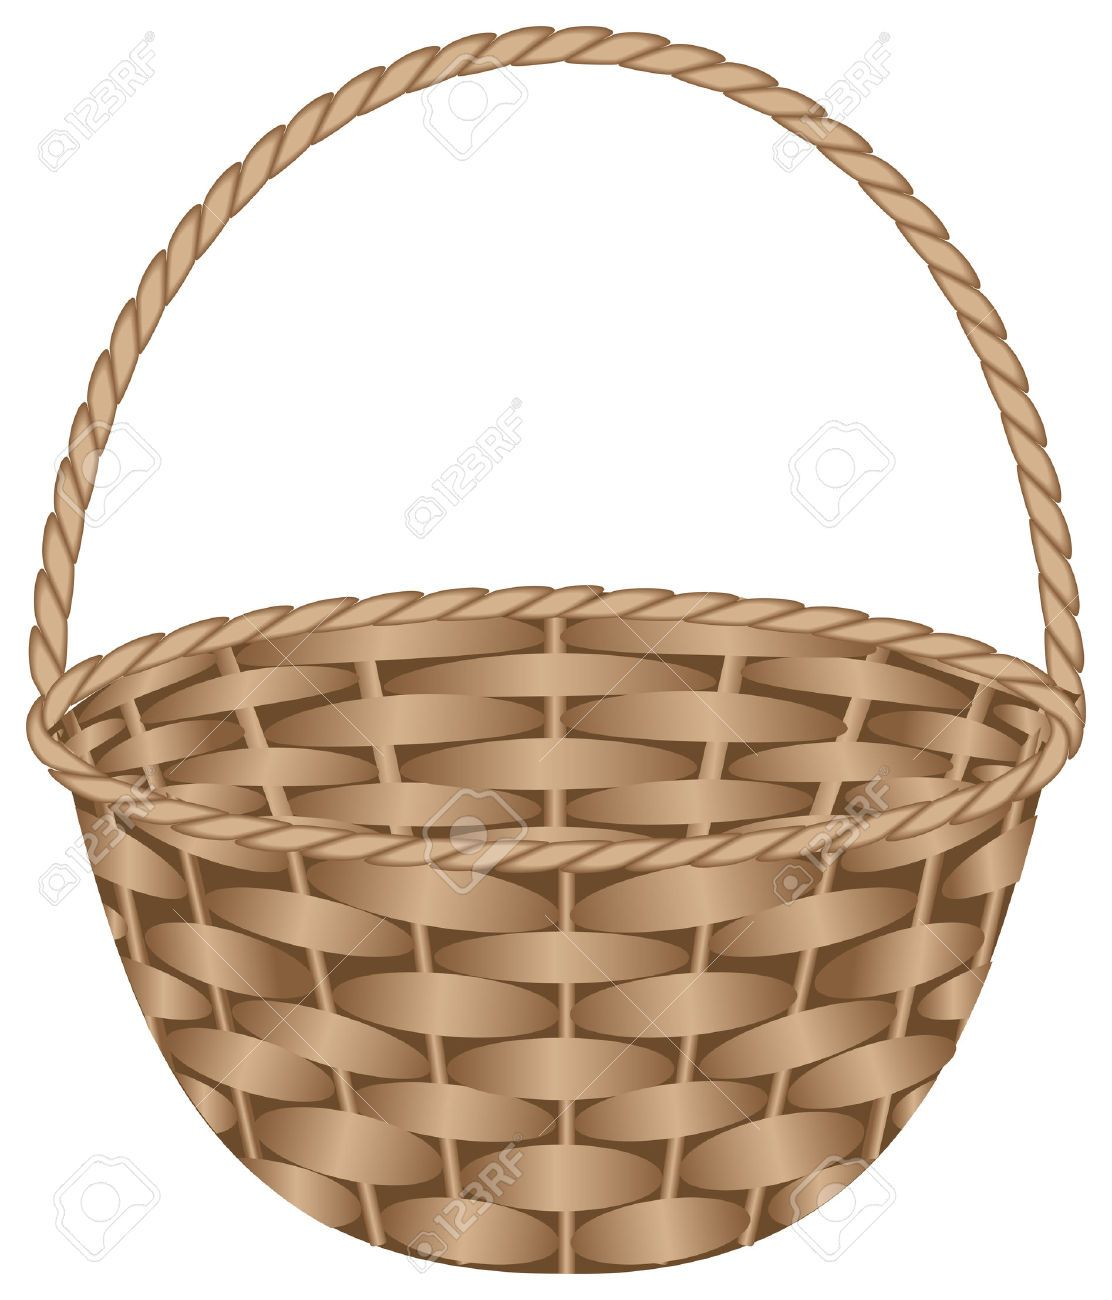 Basket clipart woven basket. Baskets clipground wicker laundry